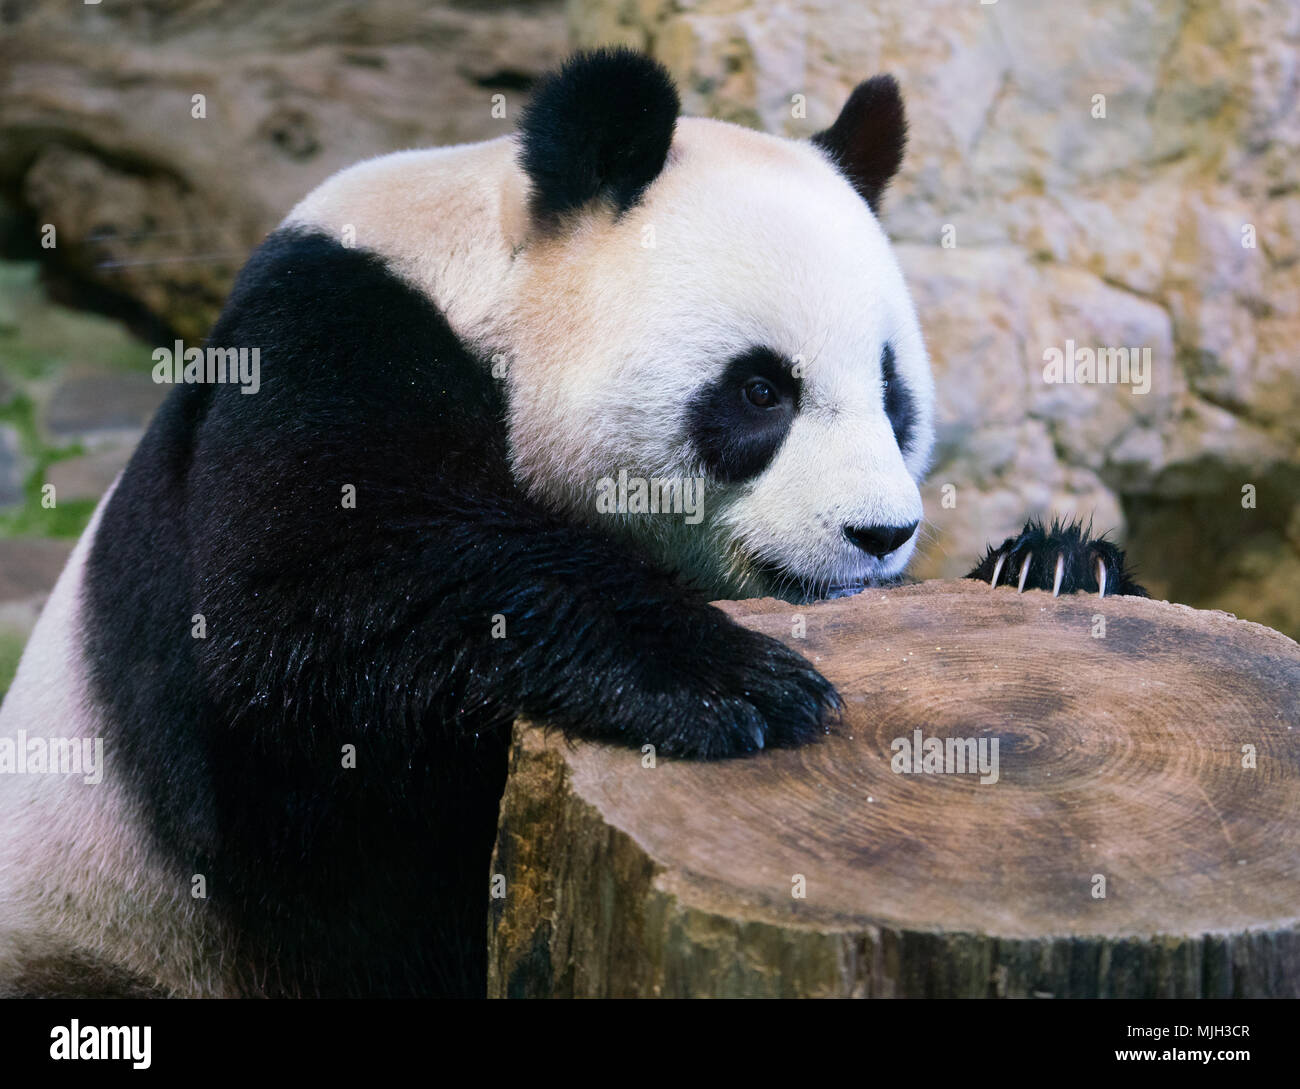 Giant panda bear close-up with paw on a tree stump and visible claws - Stock Image